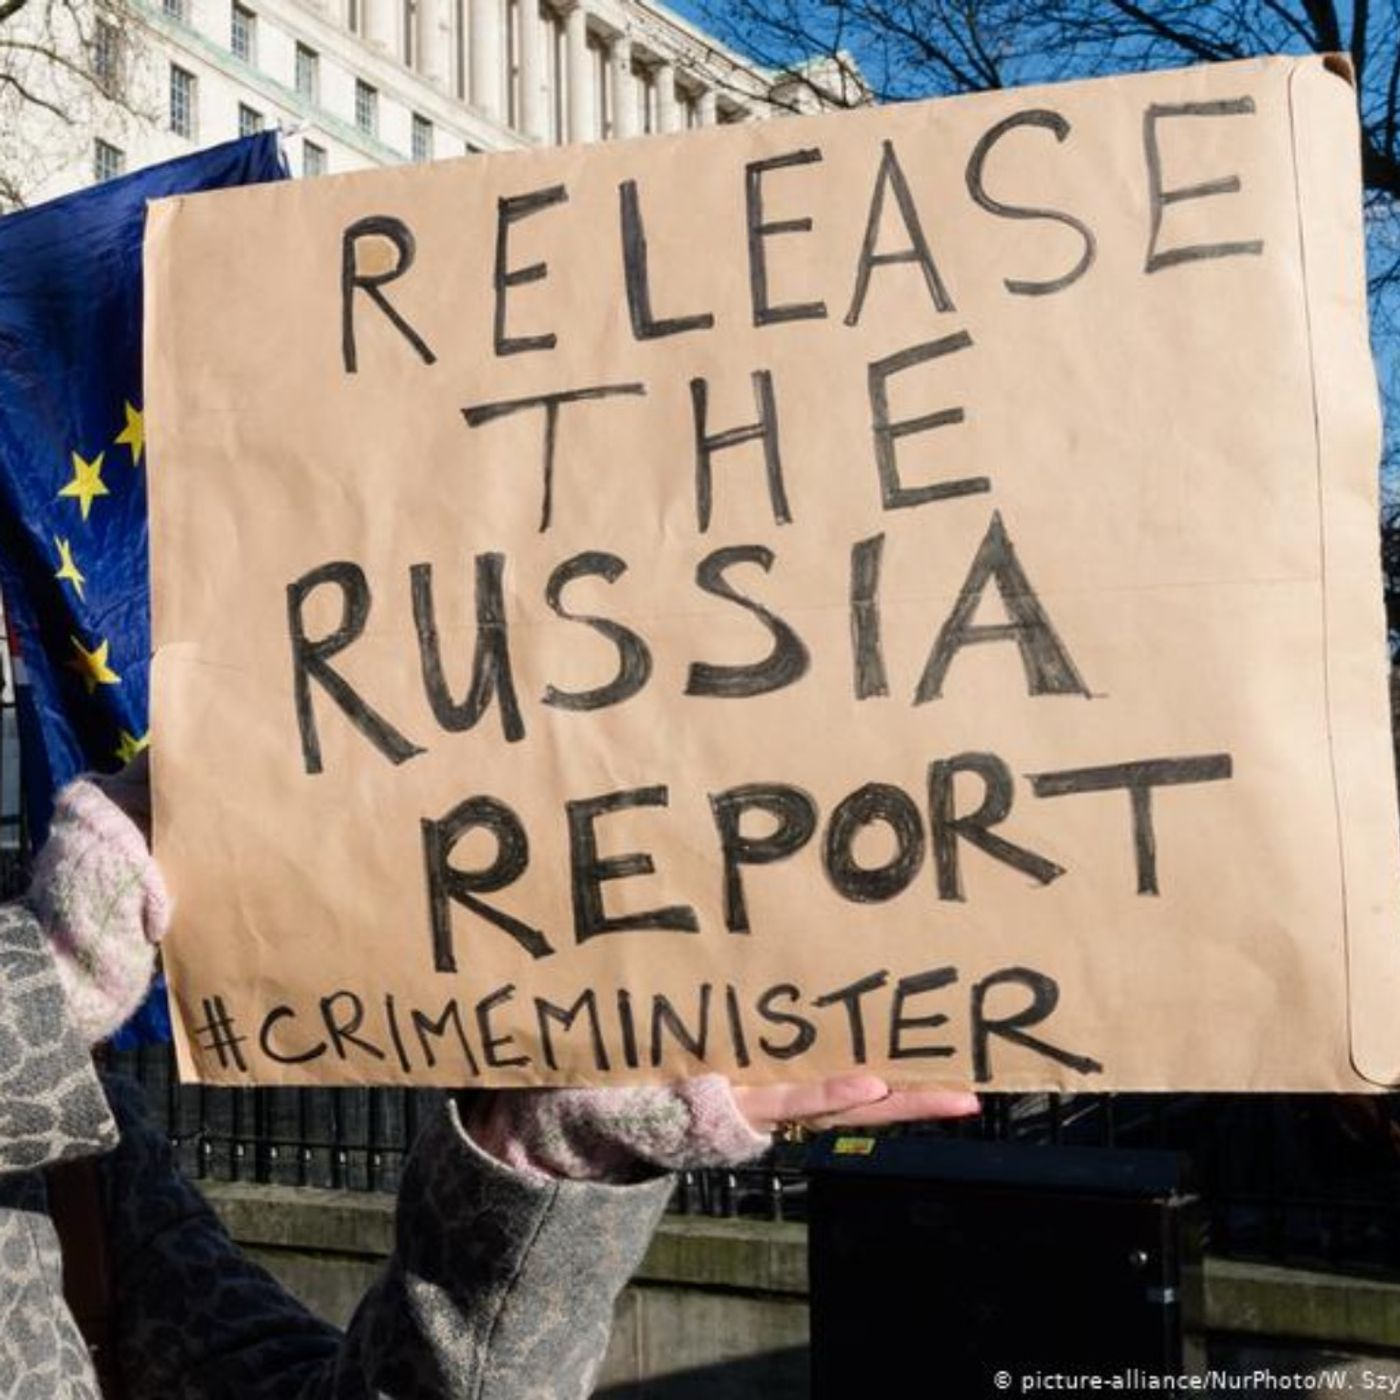 POLICY AND PRACTICE - The Russia Report